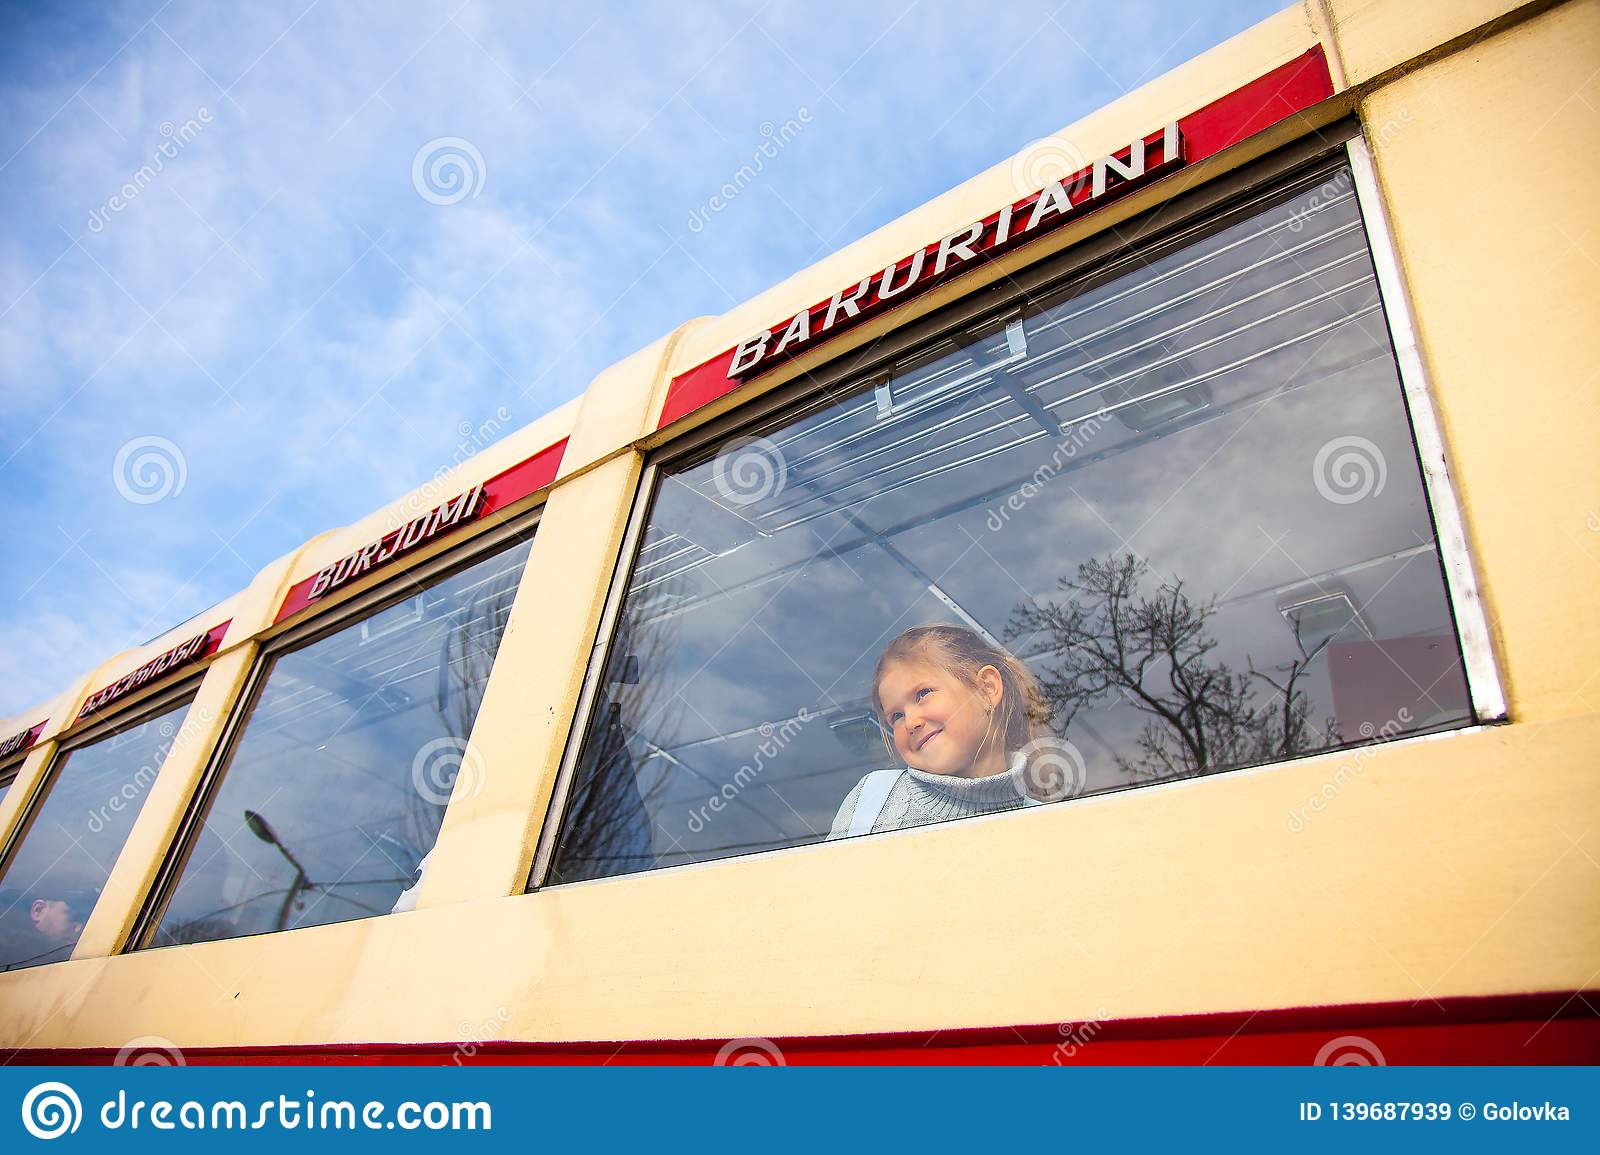 Little girl looking at window of old Georgian train Kukushka, view from outside